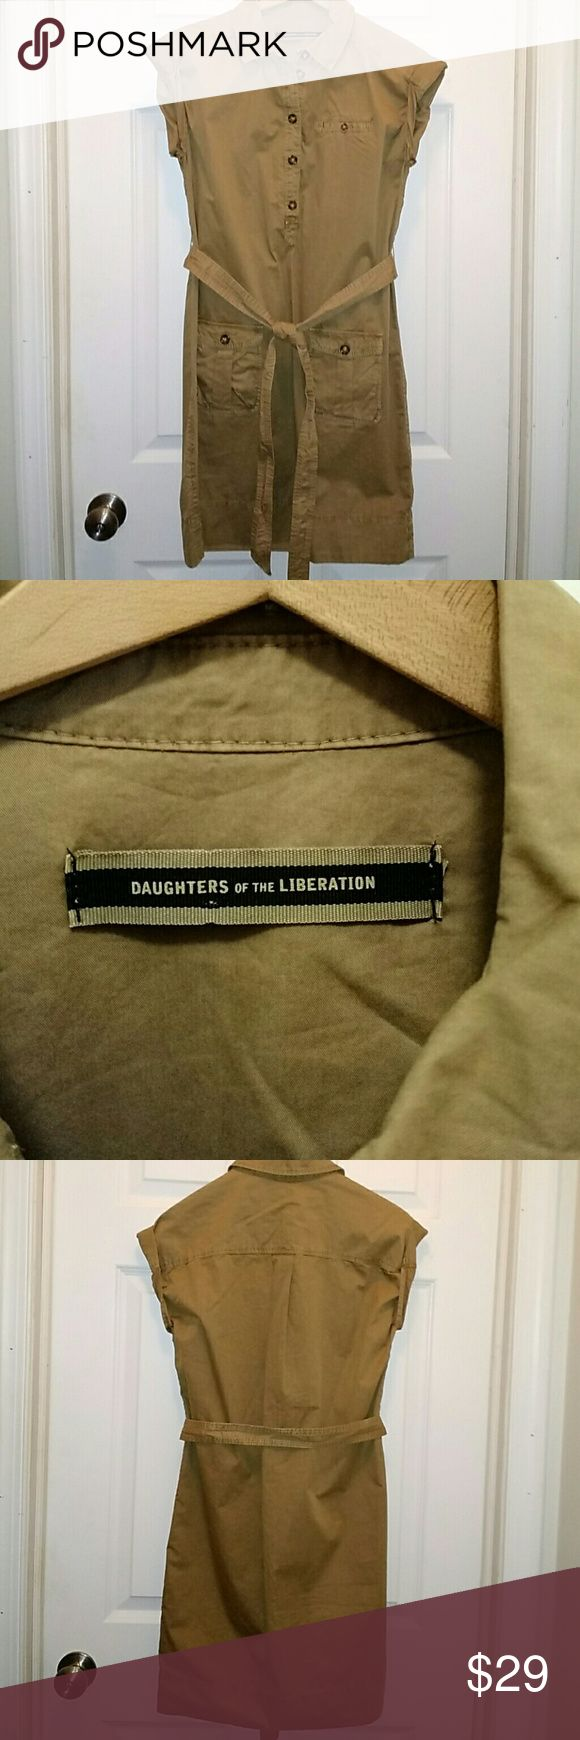 """Daughters of The Liberation khaki shirt dress XS Daughters of The Liberation by Anthropologie khaki shirt dress. Size Xs. Front flap Pockets with buttons. Rolled Cap sleeves. 100% proximal. Waist measures 40"""" and cinches an with belt. Length measures 35 inches from top of shoulder to hem. Excellent condition! Daughters of the liberation Dresses"""